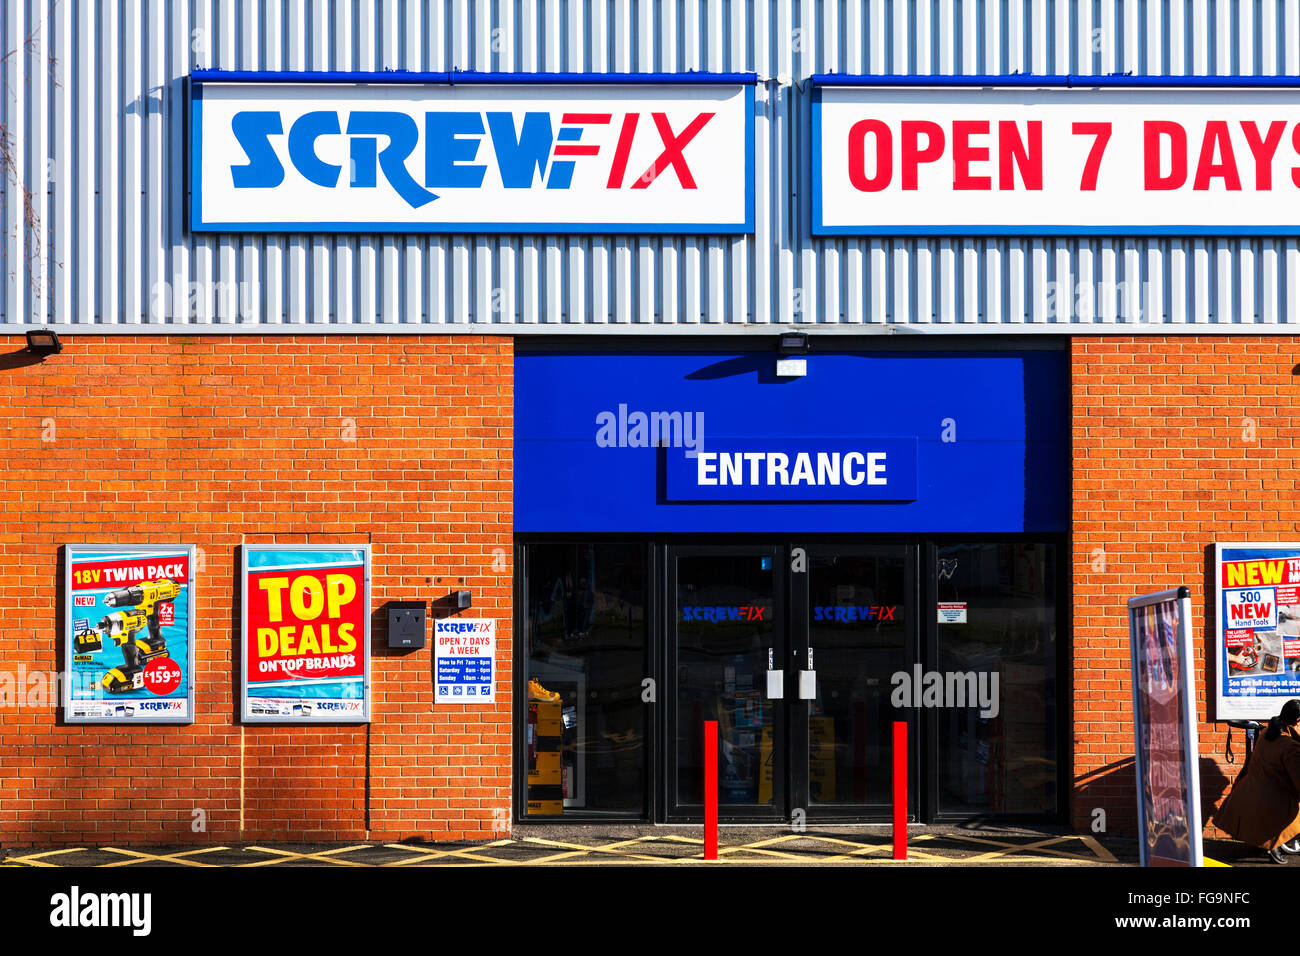 Screwfix screw fix tools  trade tool accessories and hardware products industrial estate Louth Lincolnshire UK England - Stock Image